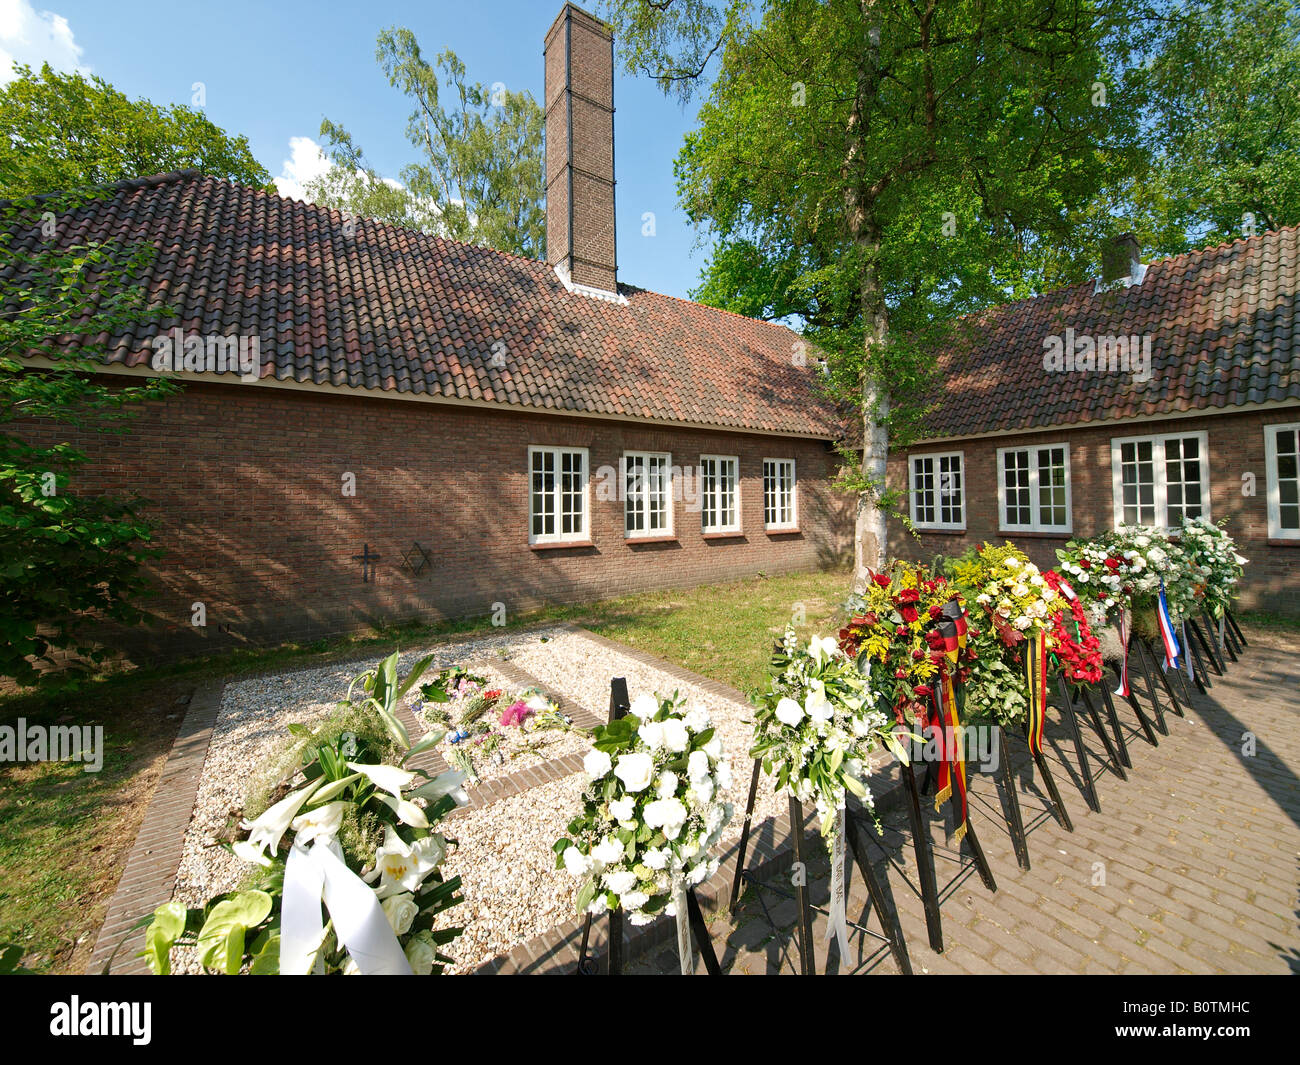 Flowers of the yearly memorial service for the WW2 deaths at national monument concentration camp Vught the Netherlands - Stock Image